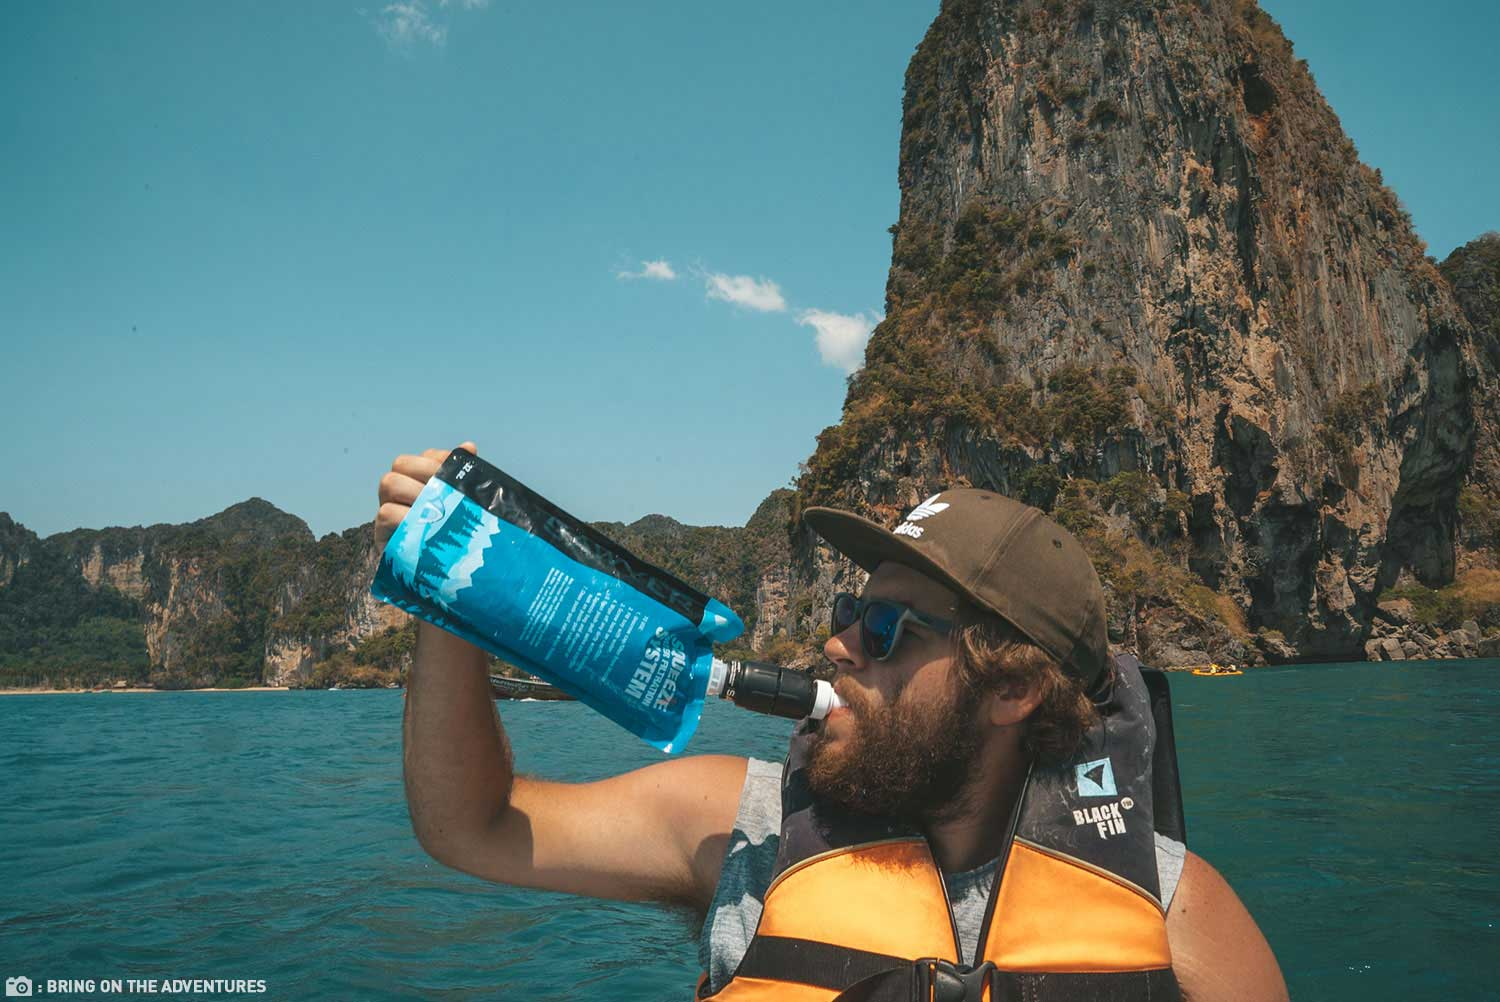 A Gentleman Drinking Water From His Sawyer Micro Squeeze Water Filter While Kayaking